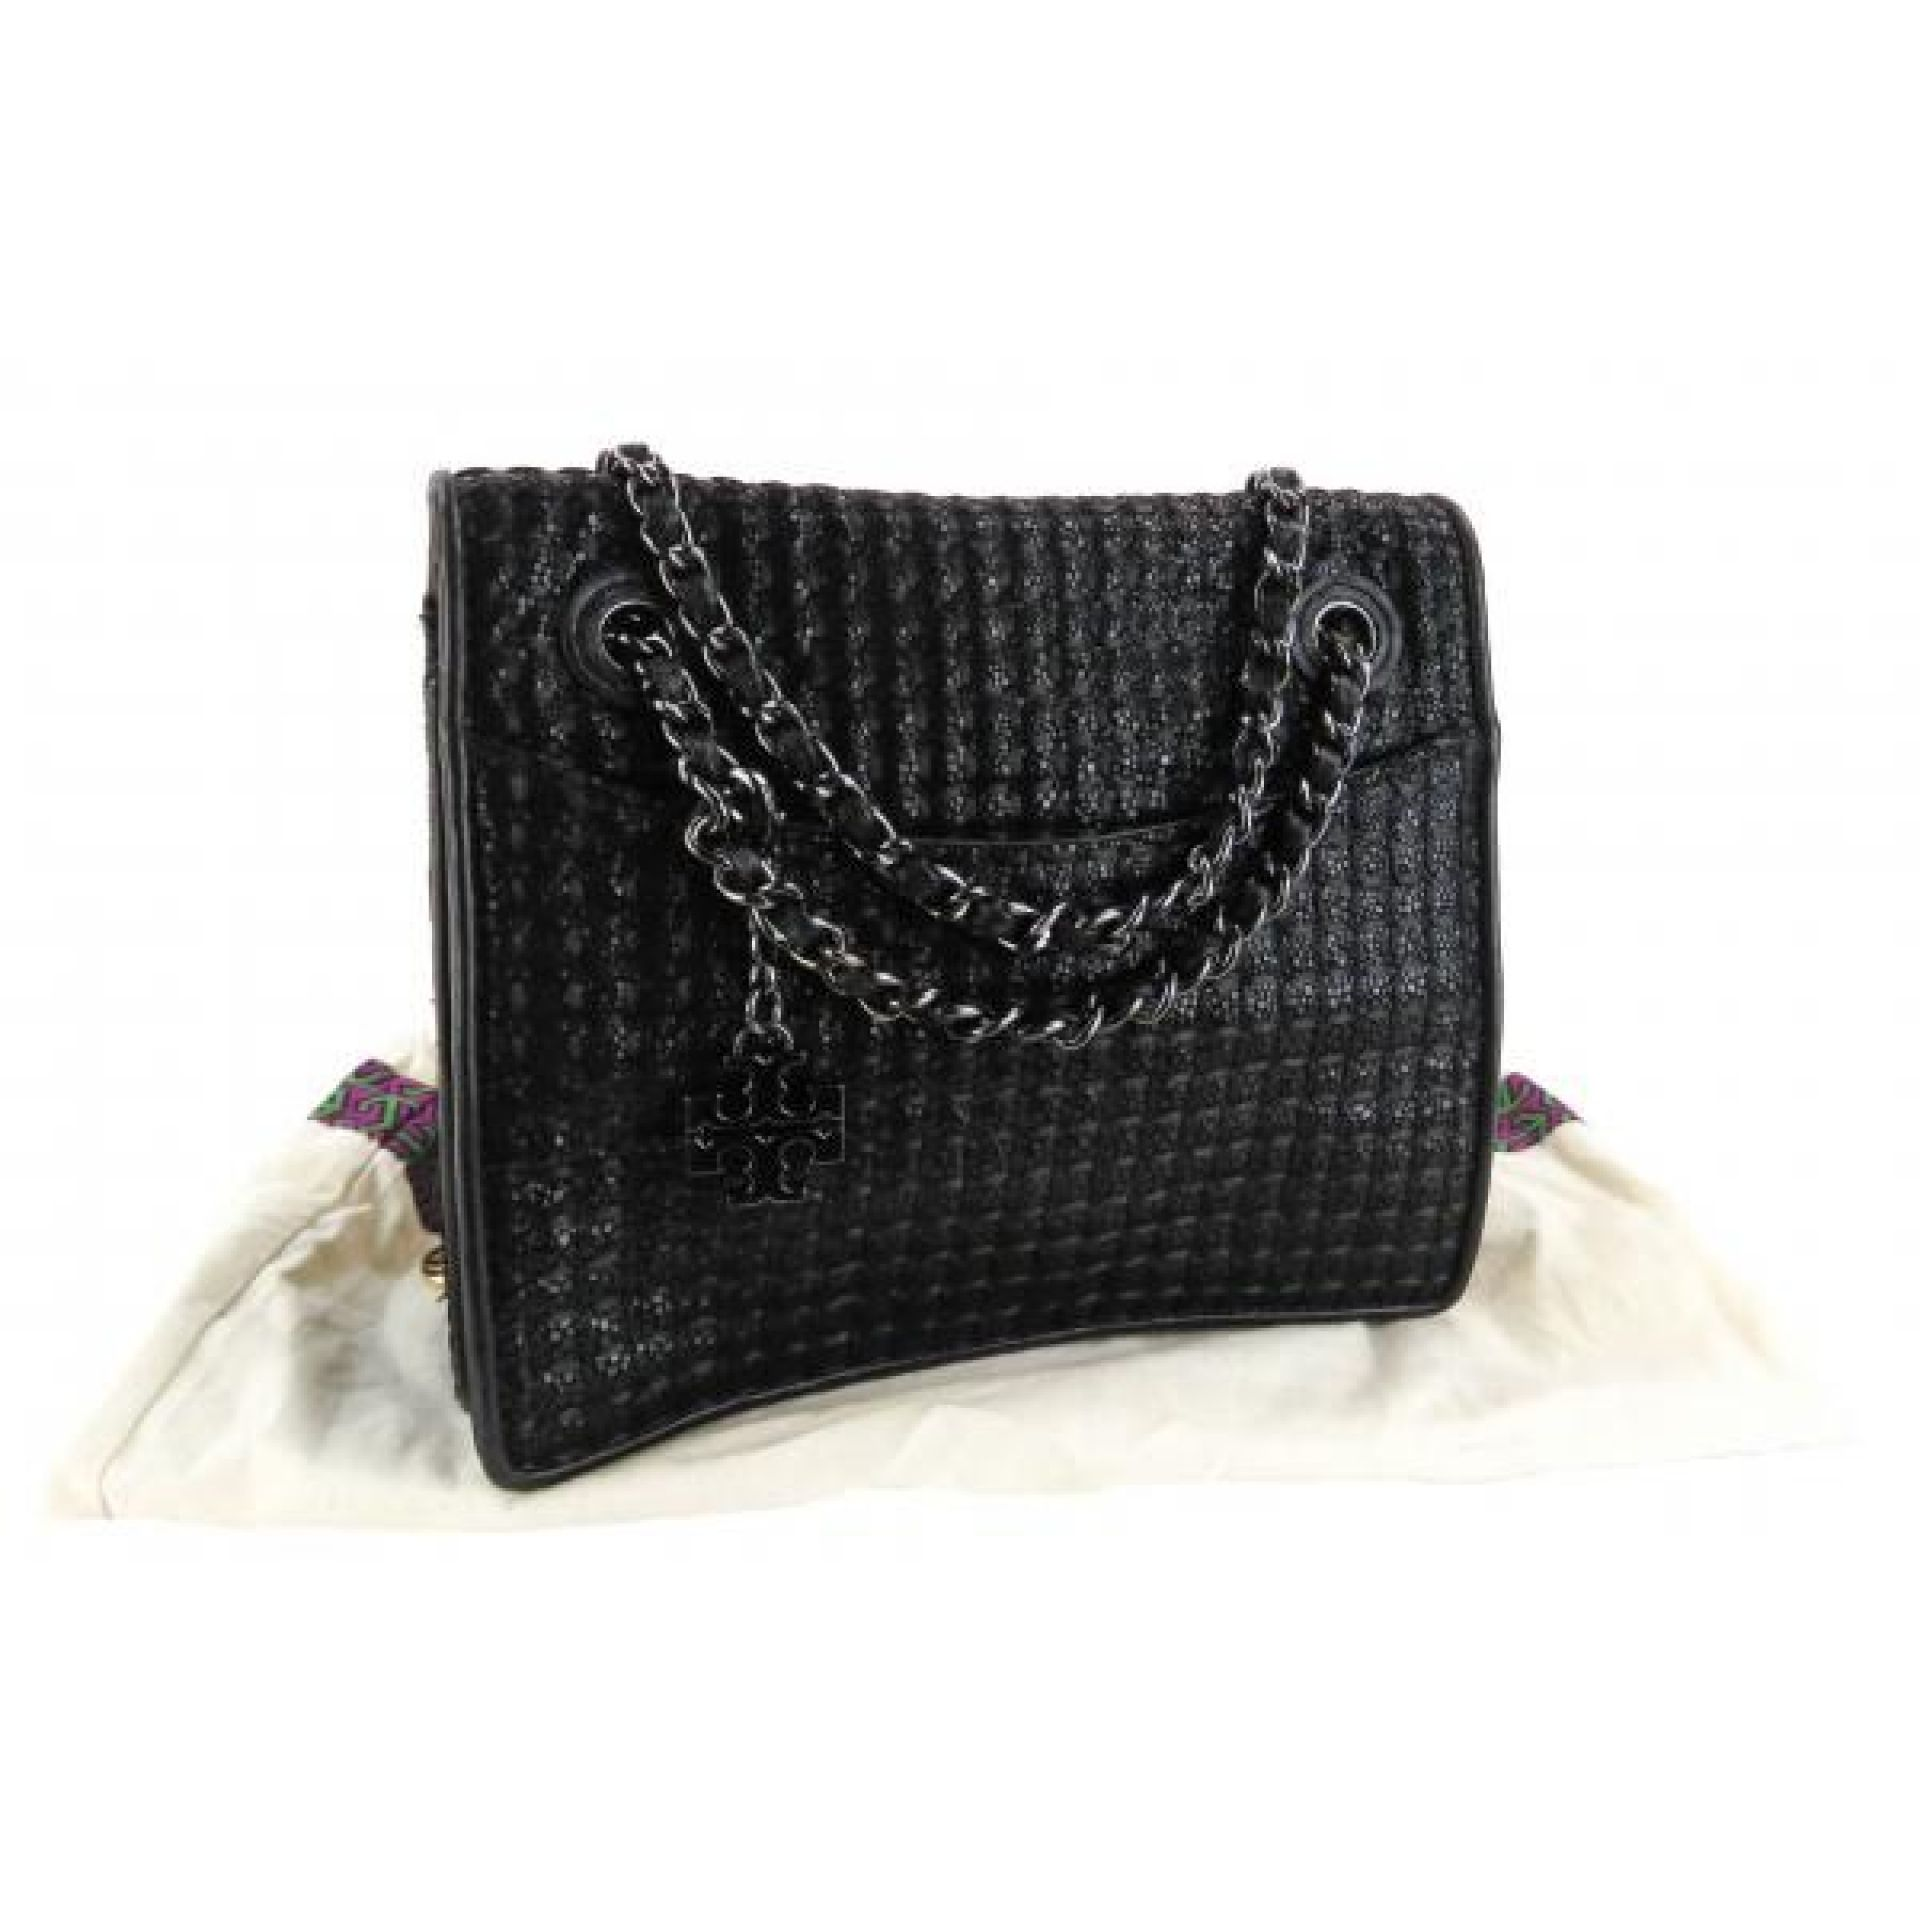 Tory Burch Black Metallic Quilted Leather Fleming Chain Shoulder Bag